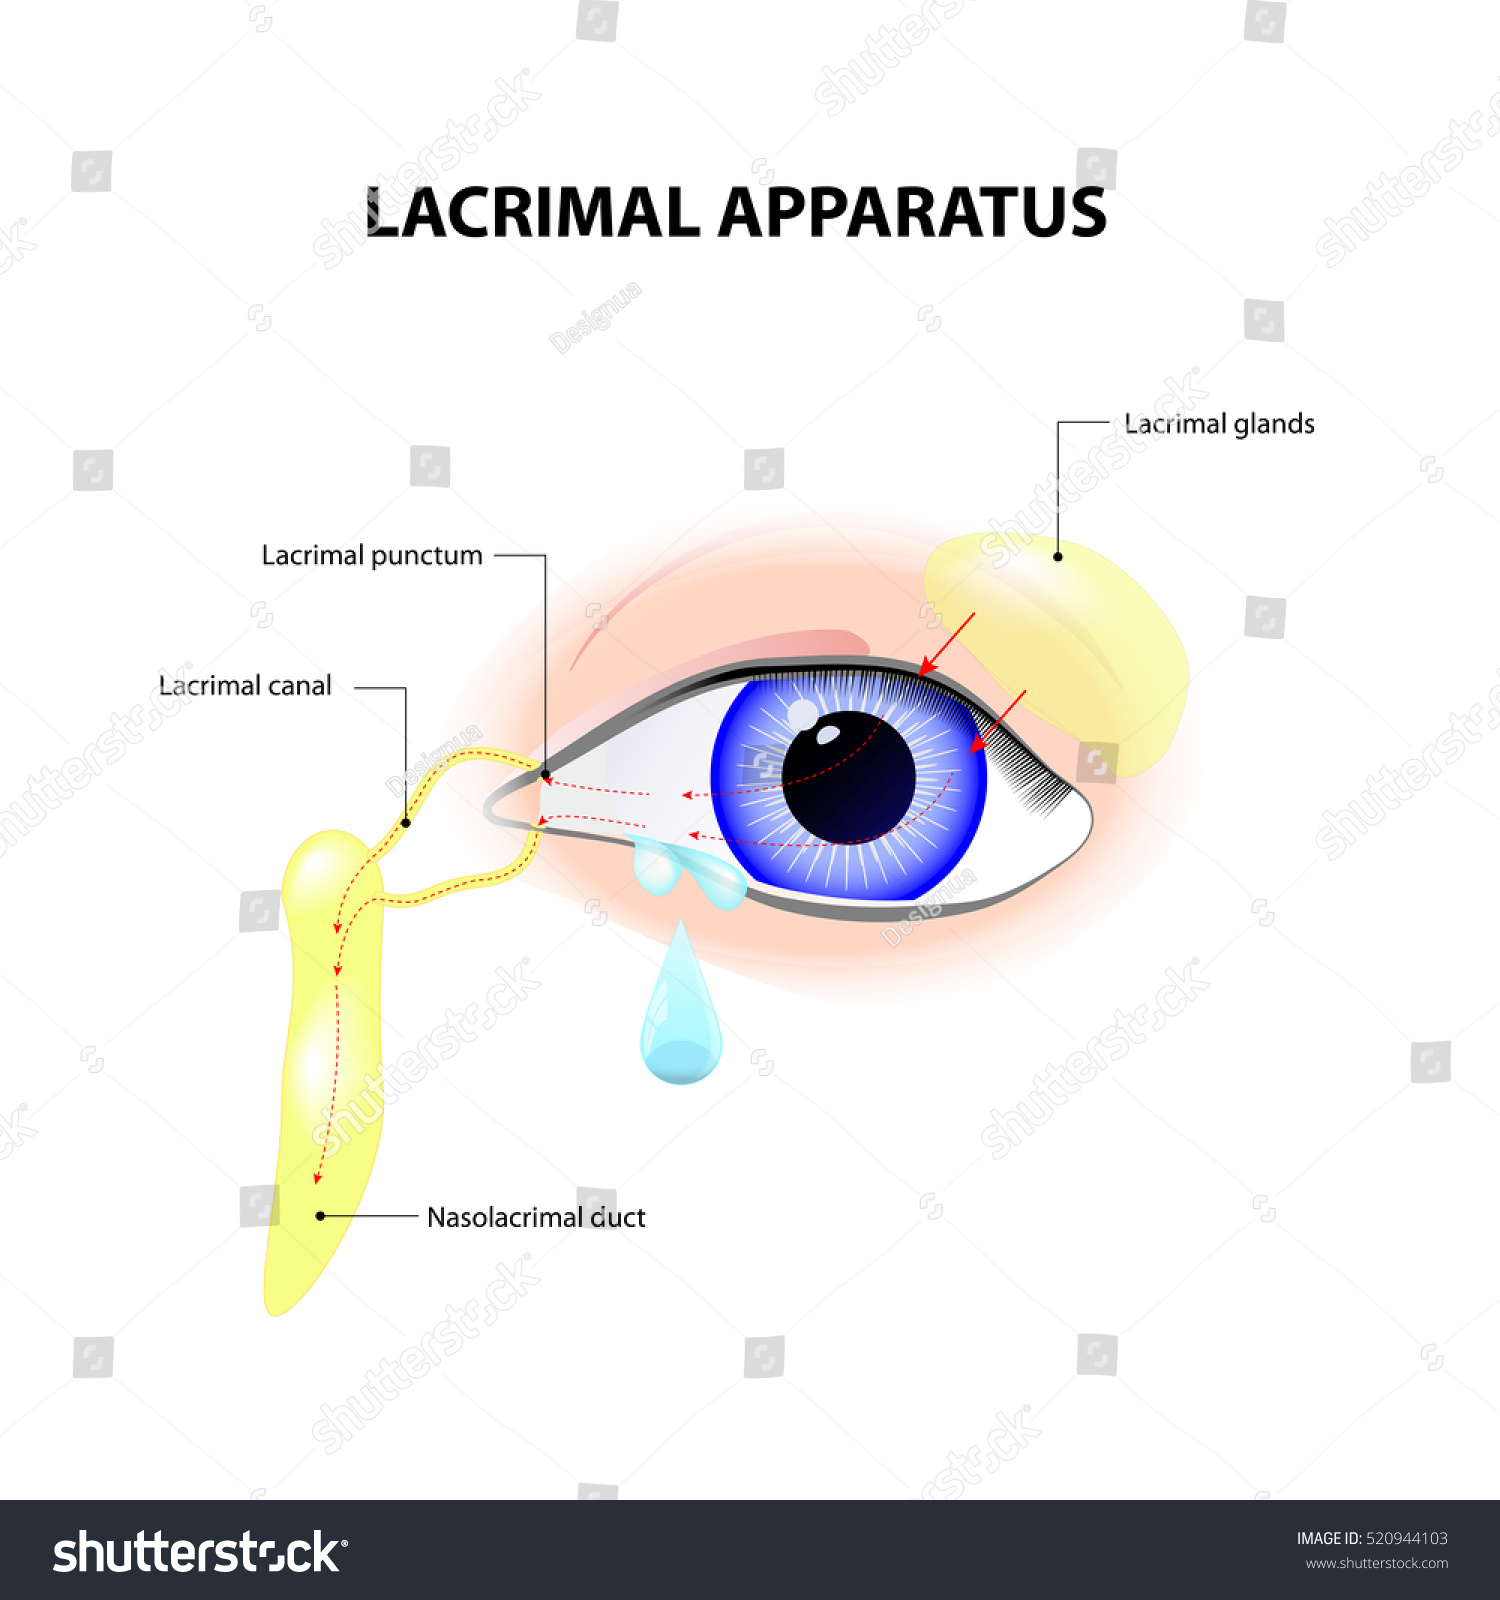 Lacrimal Apparatus Anatomy Lacrimation Secretion Tears Stock ...